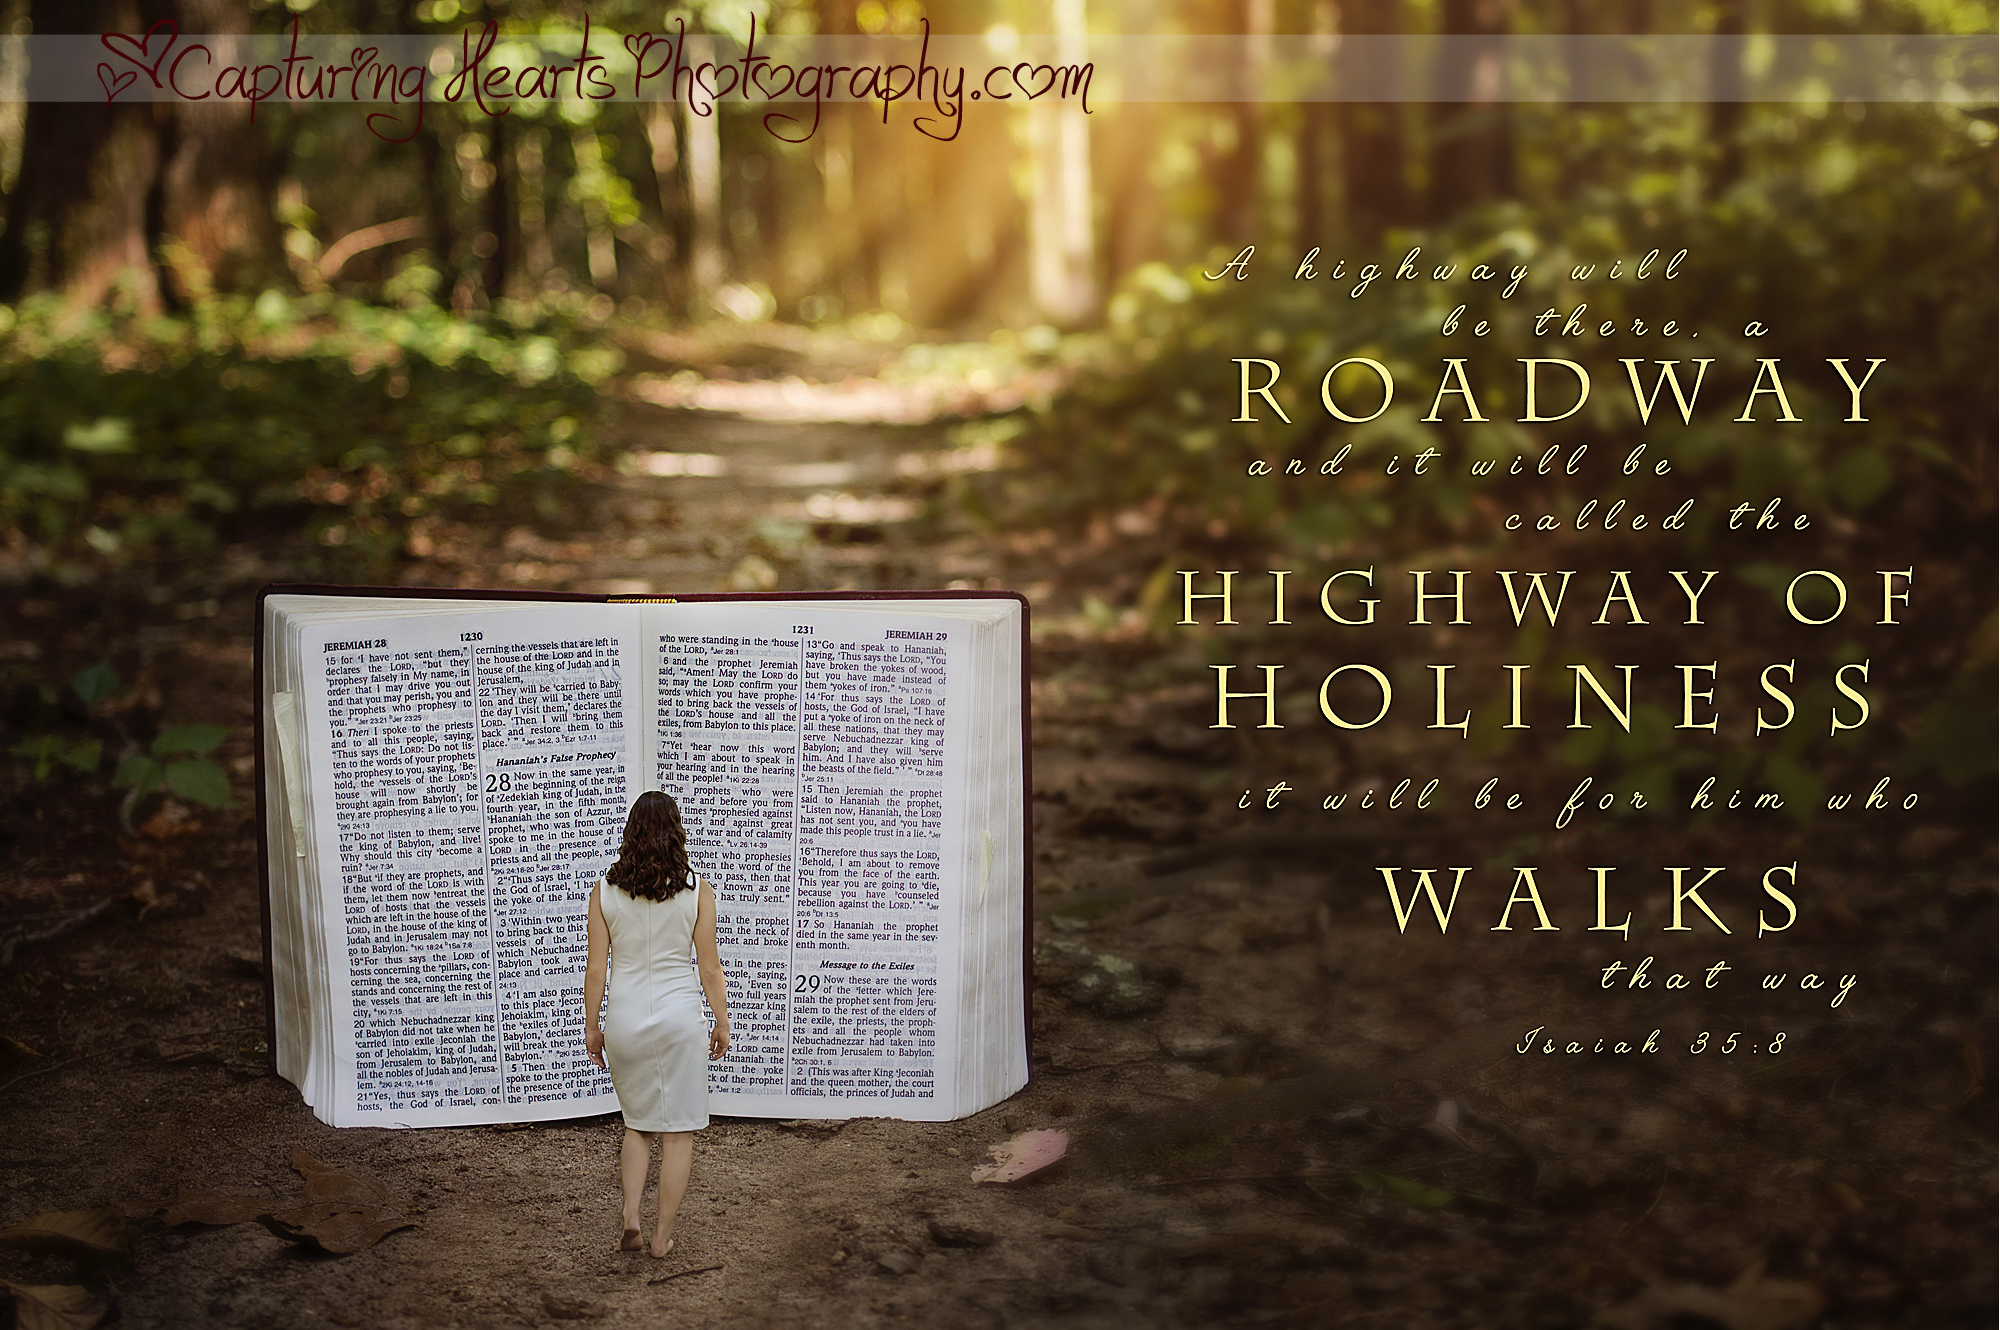 HIGHWAY OF HOLINESS web